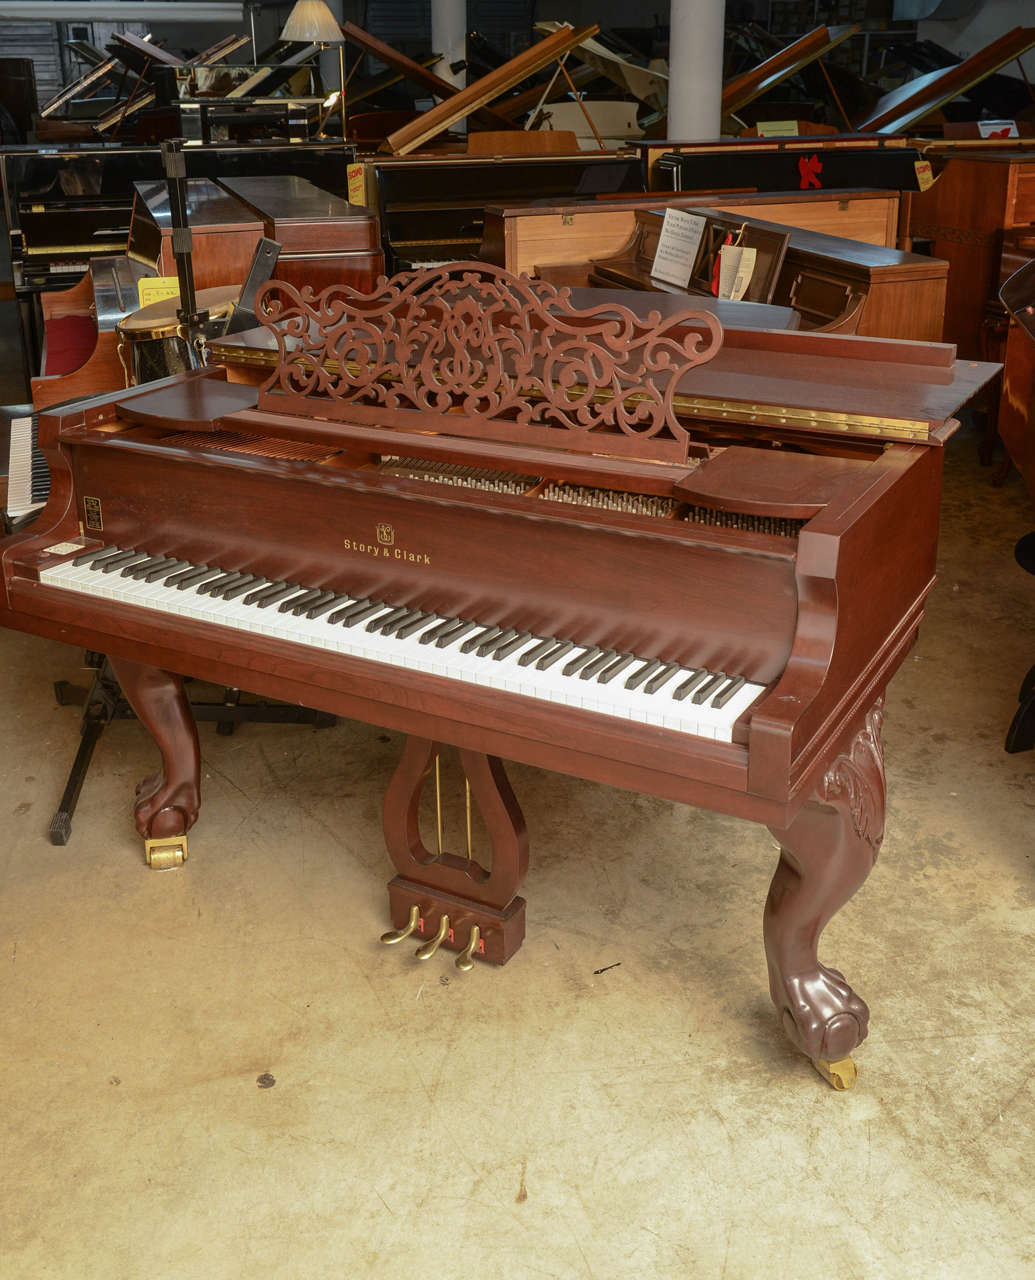 Story & Clark Baby Grand Piano with Bench 10